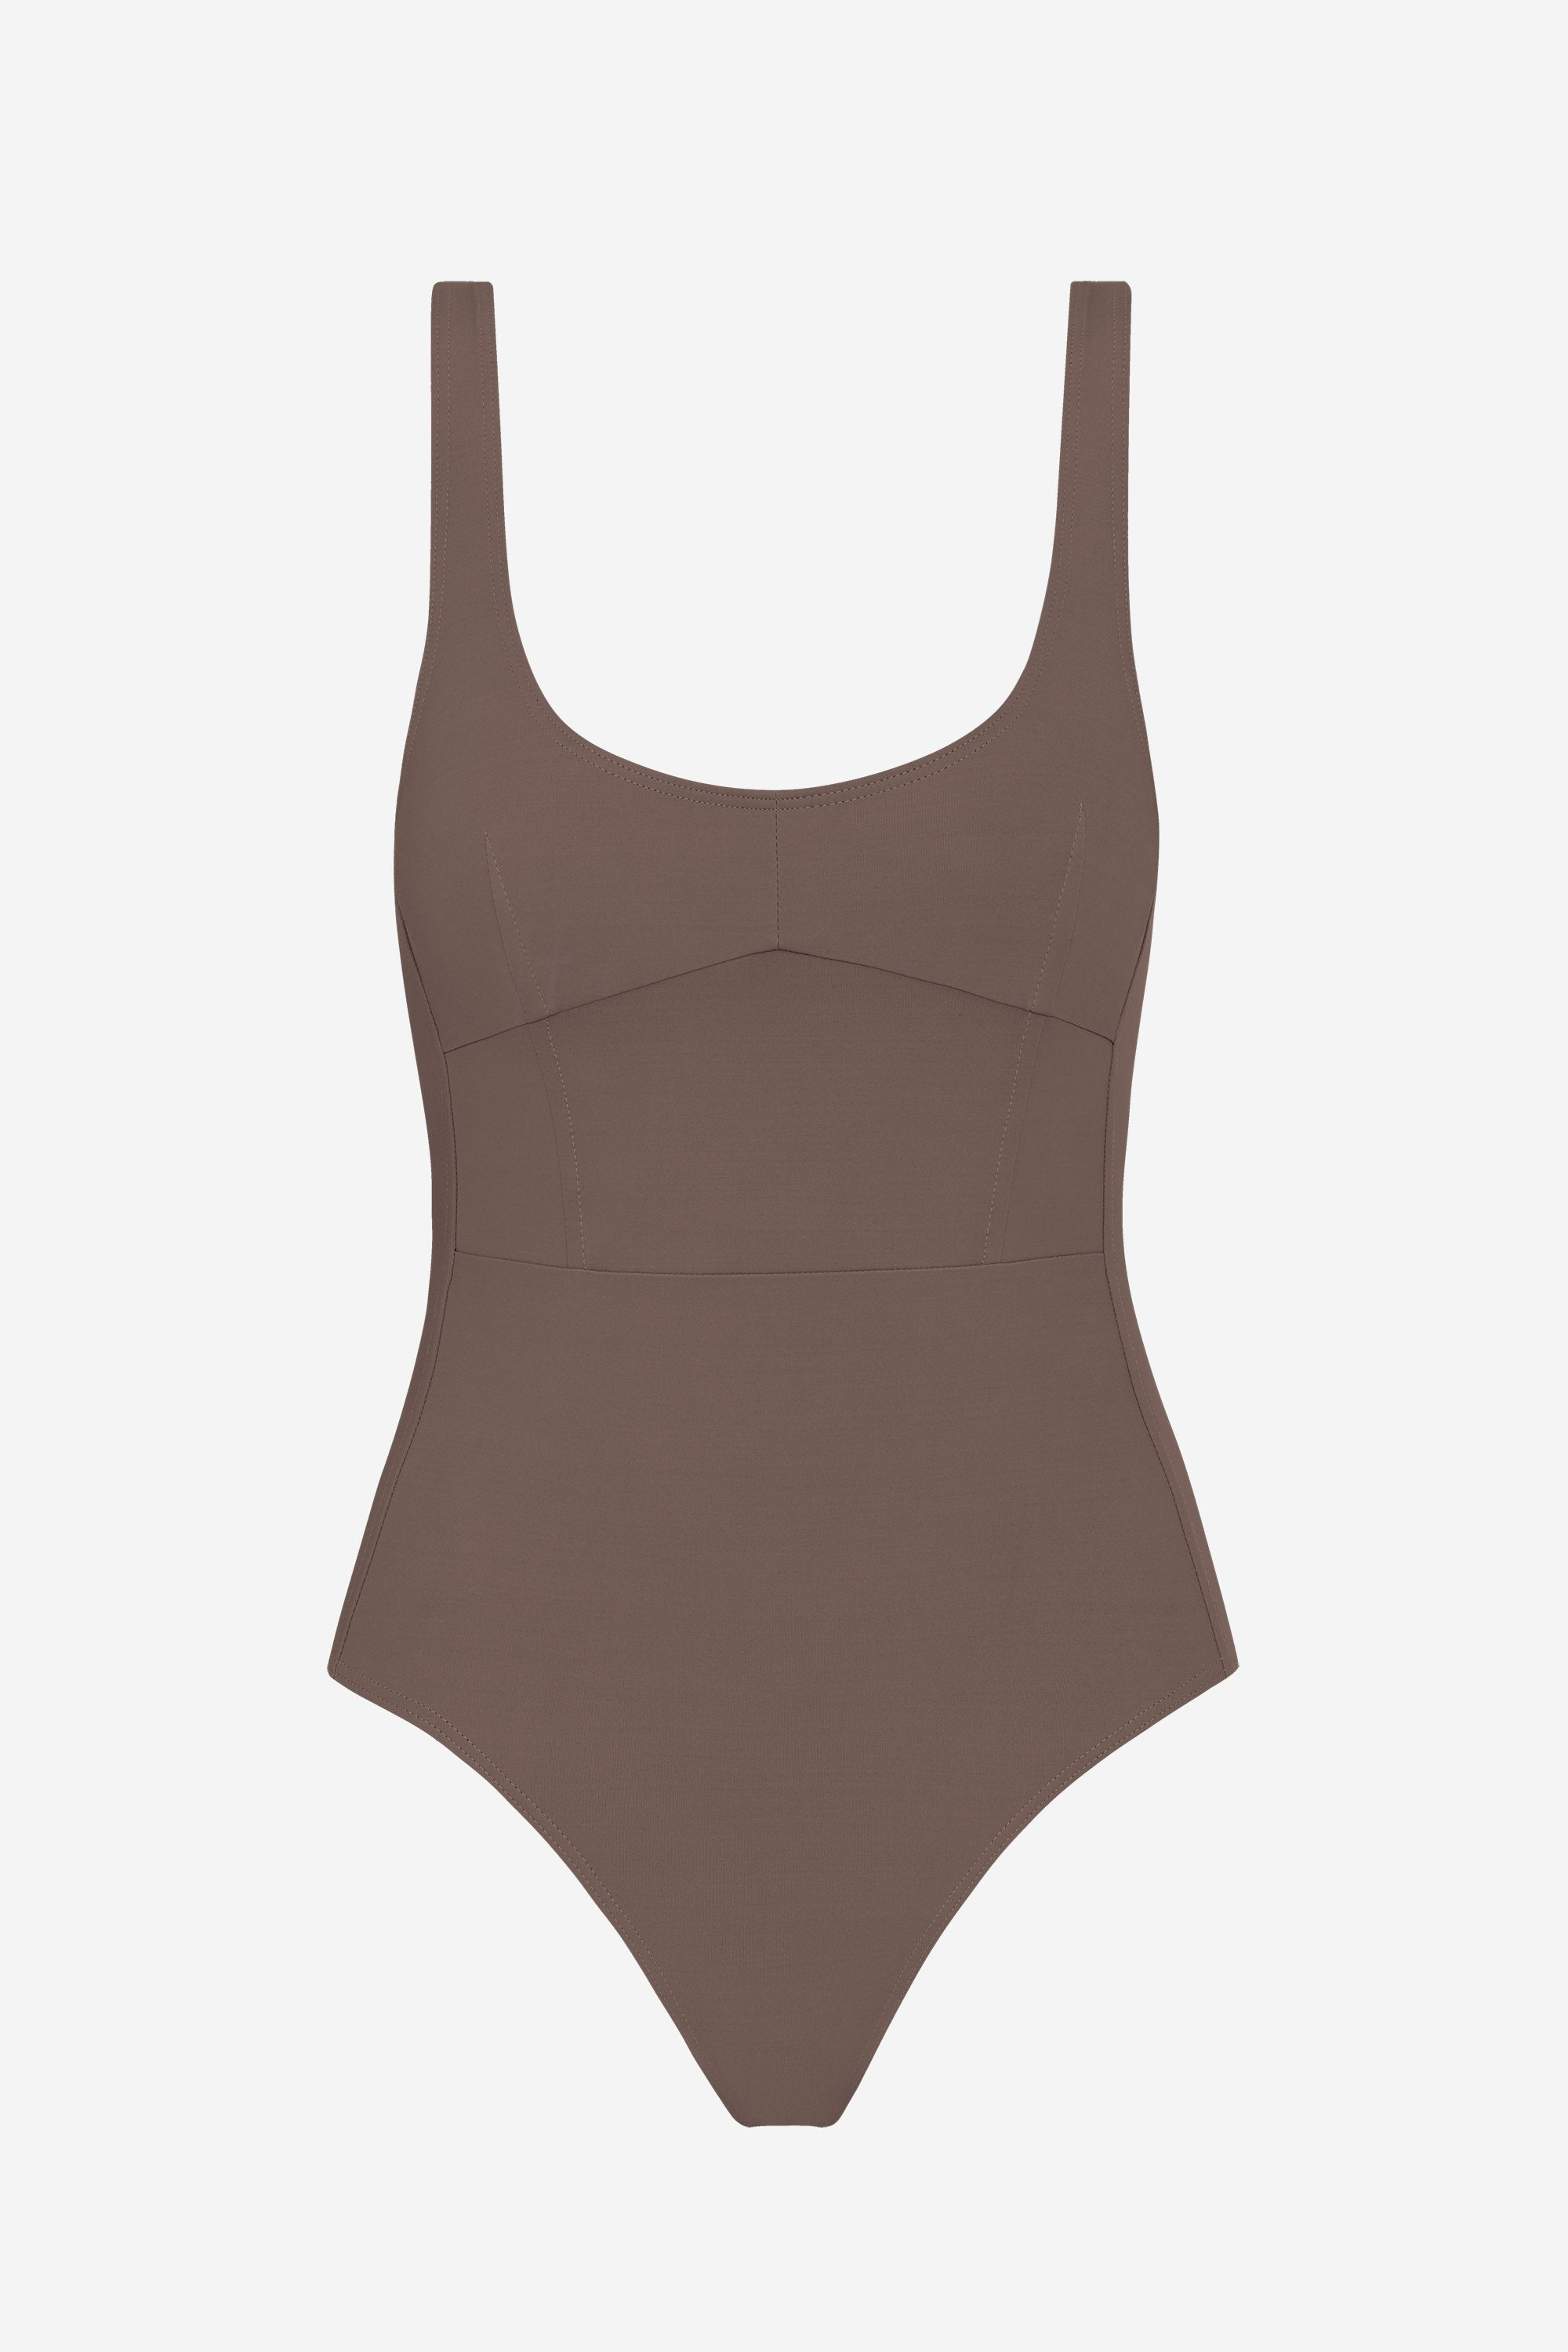 Marni one-piece - Terra brown - Swim one piece - Her Line